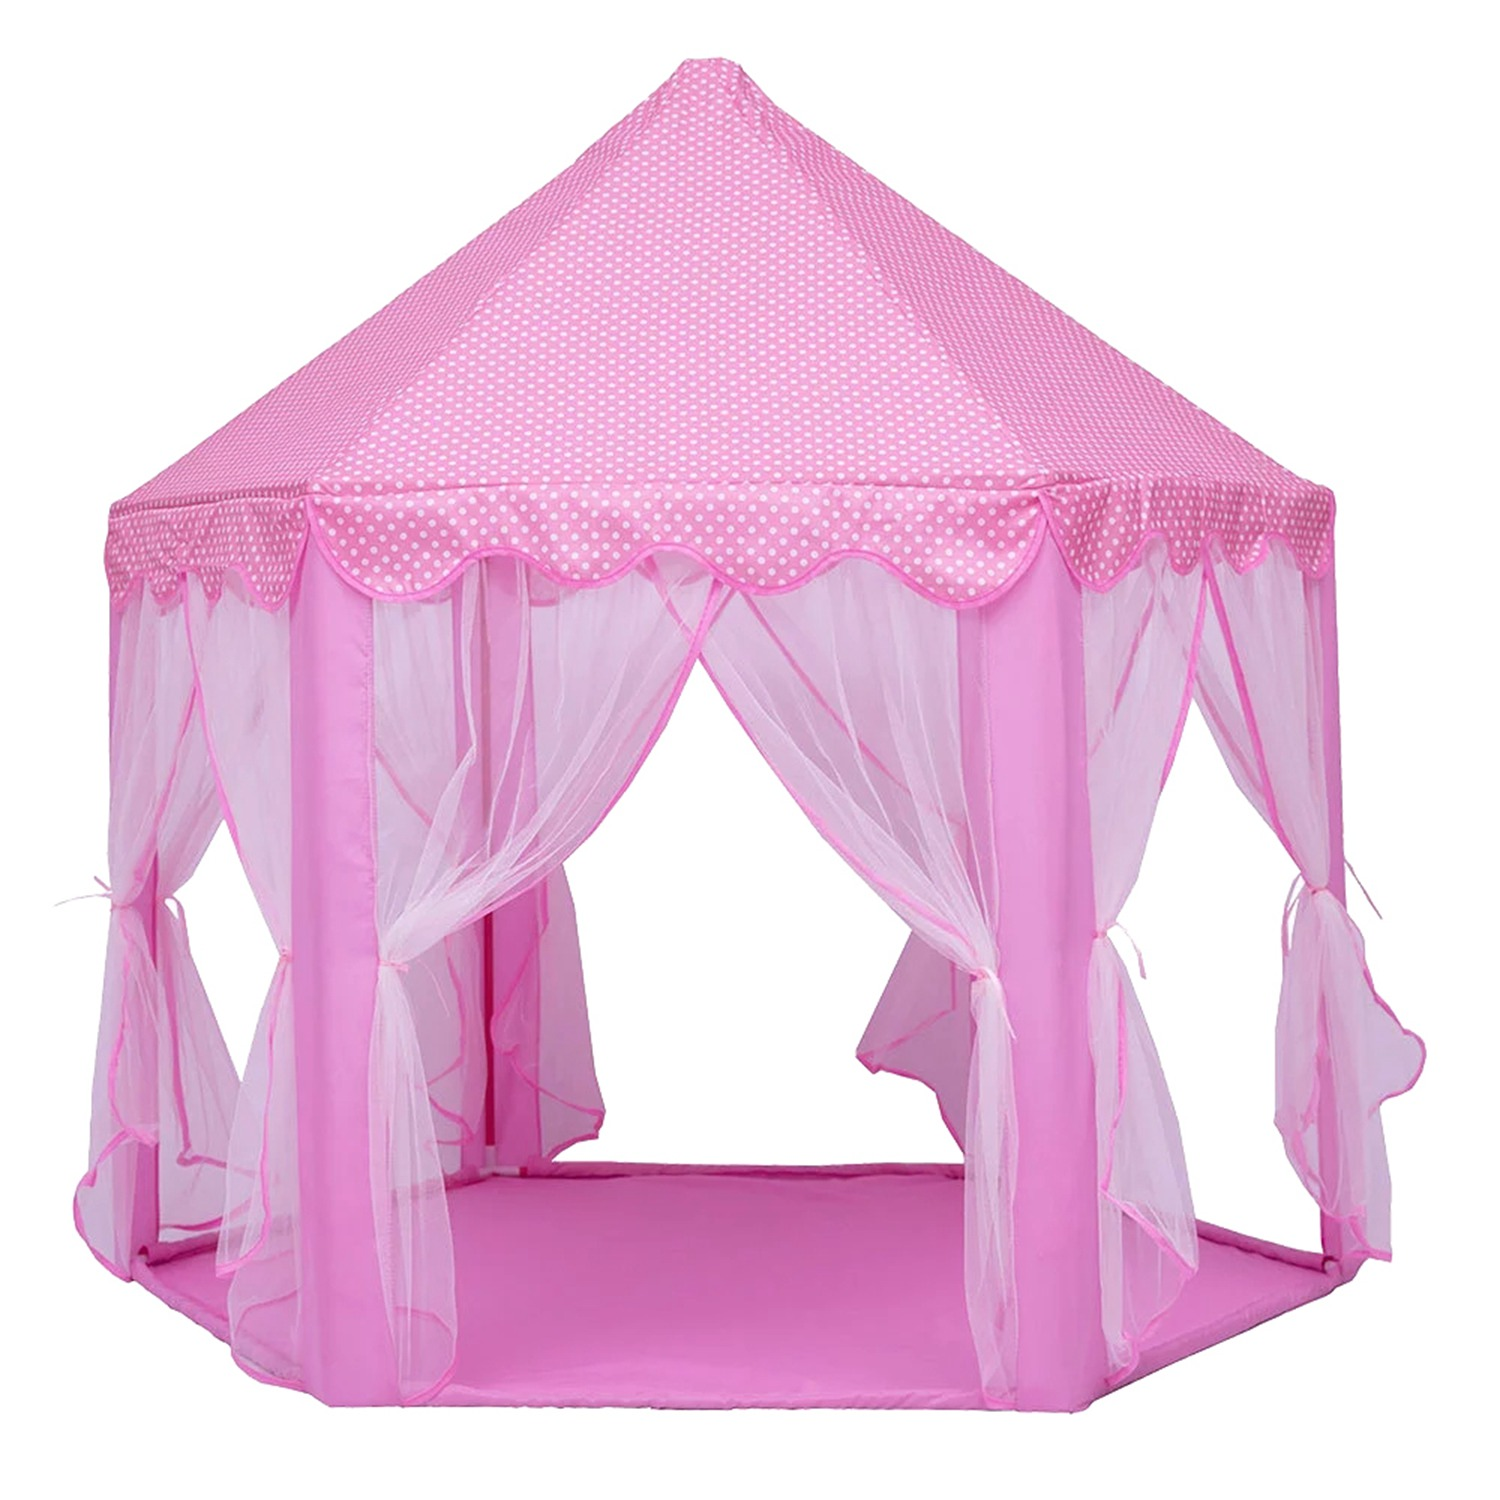 FBIL-Play Fairy House Indoor And Outdoor Kids Play Tent Hexagon Princess Castle Playhouse For Girls Funny Portable Foldable Tent